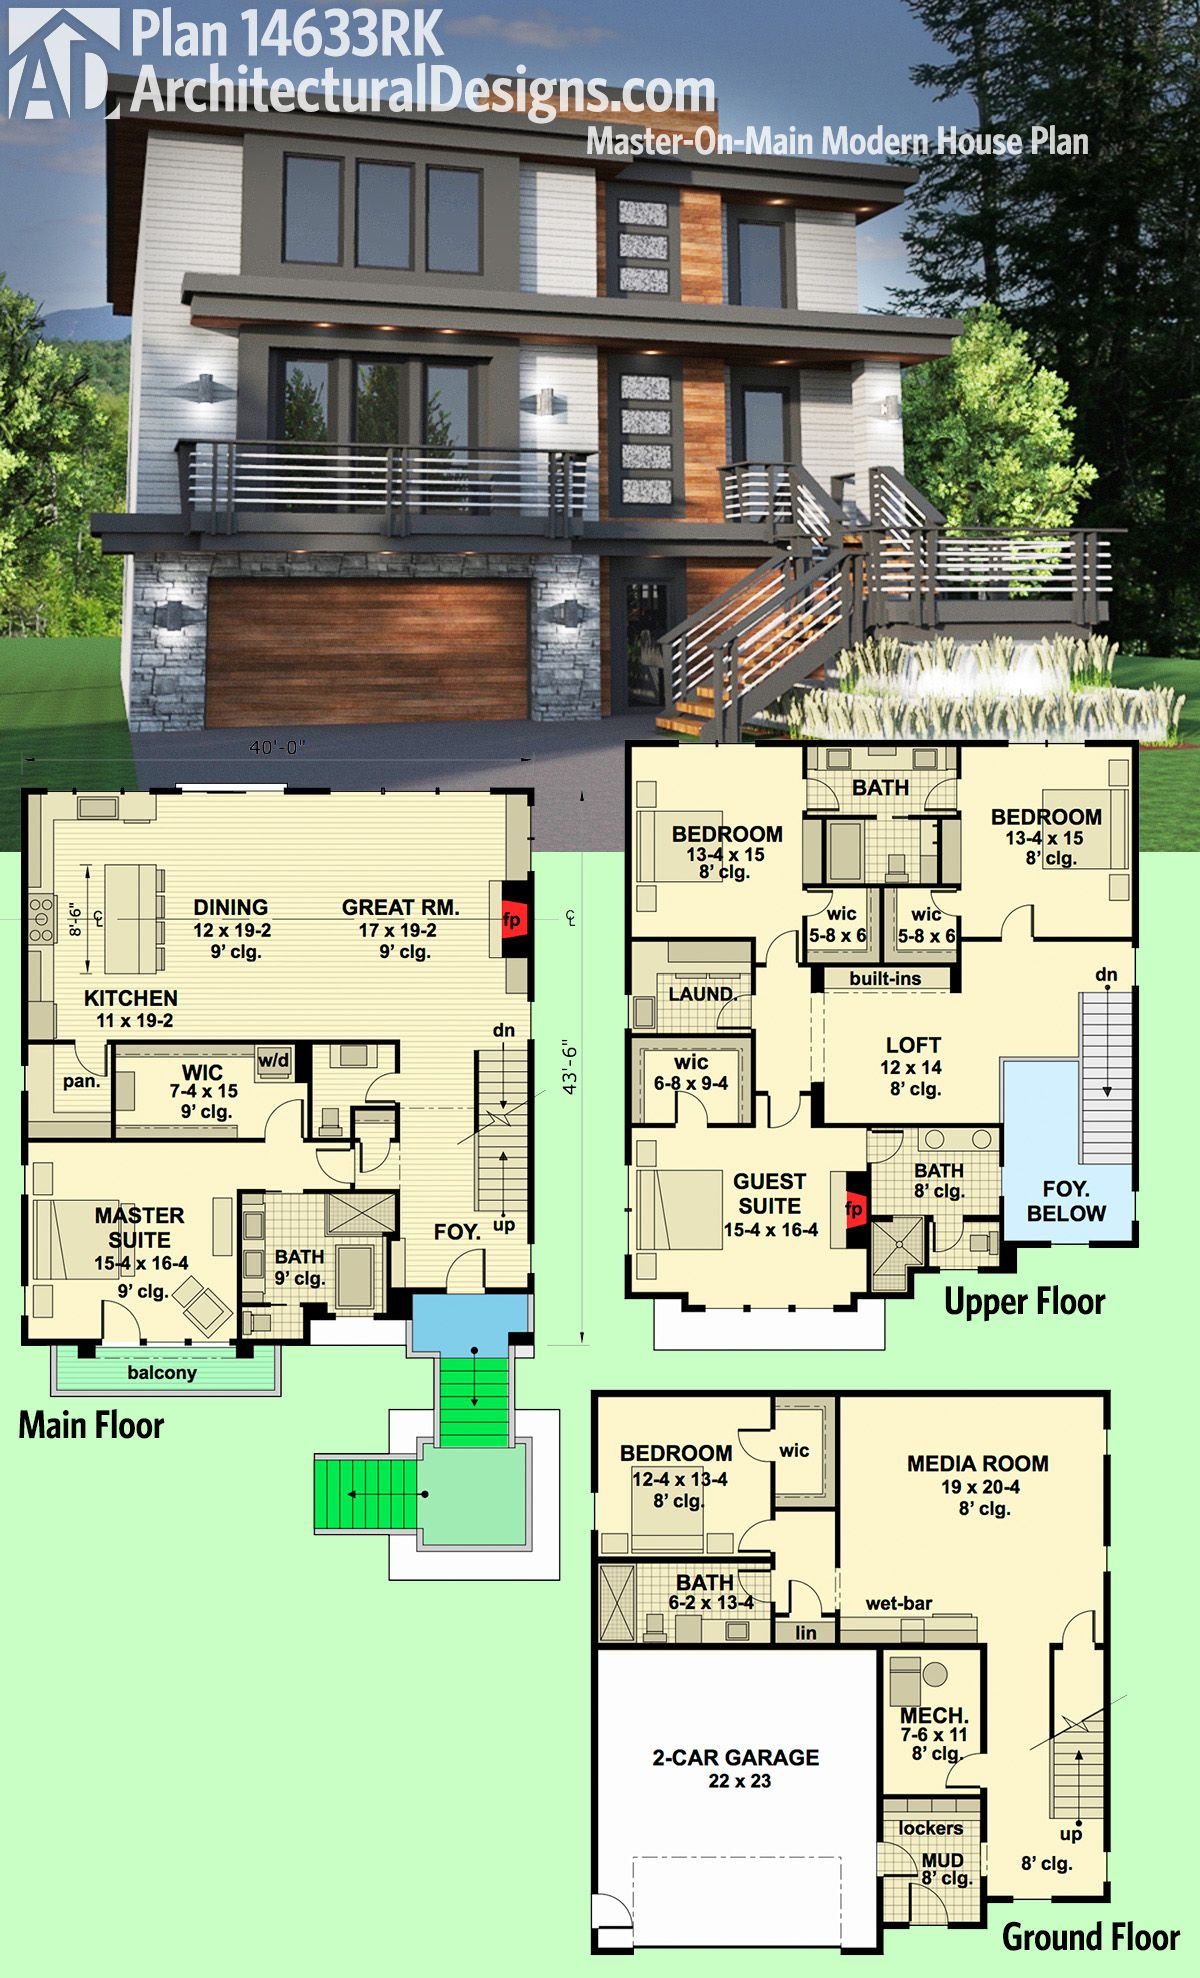 Plan 14633rk master on main modern house plan modern for Architectural design floor plans